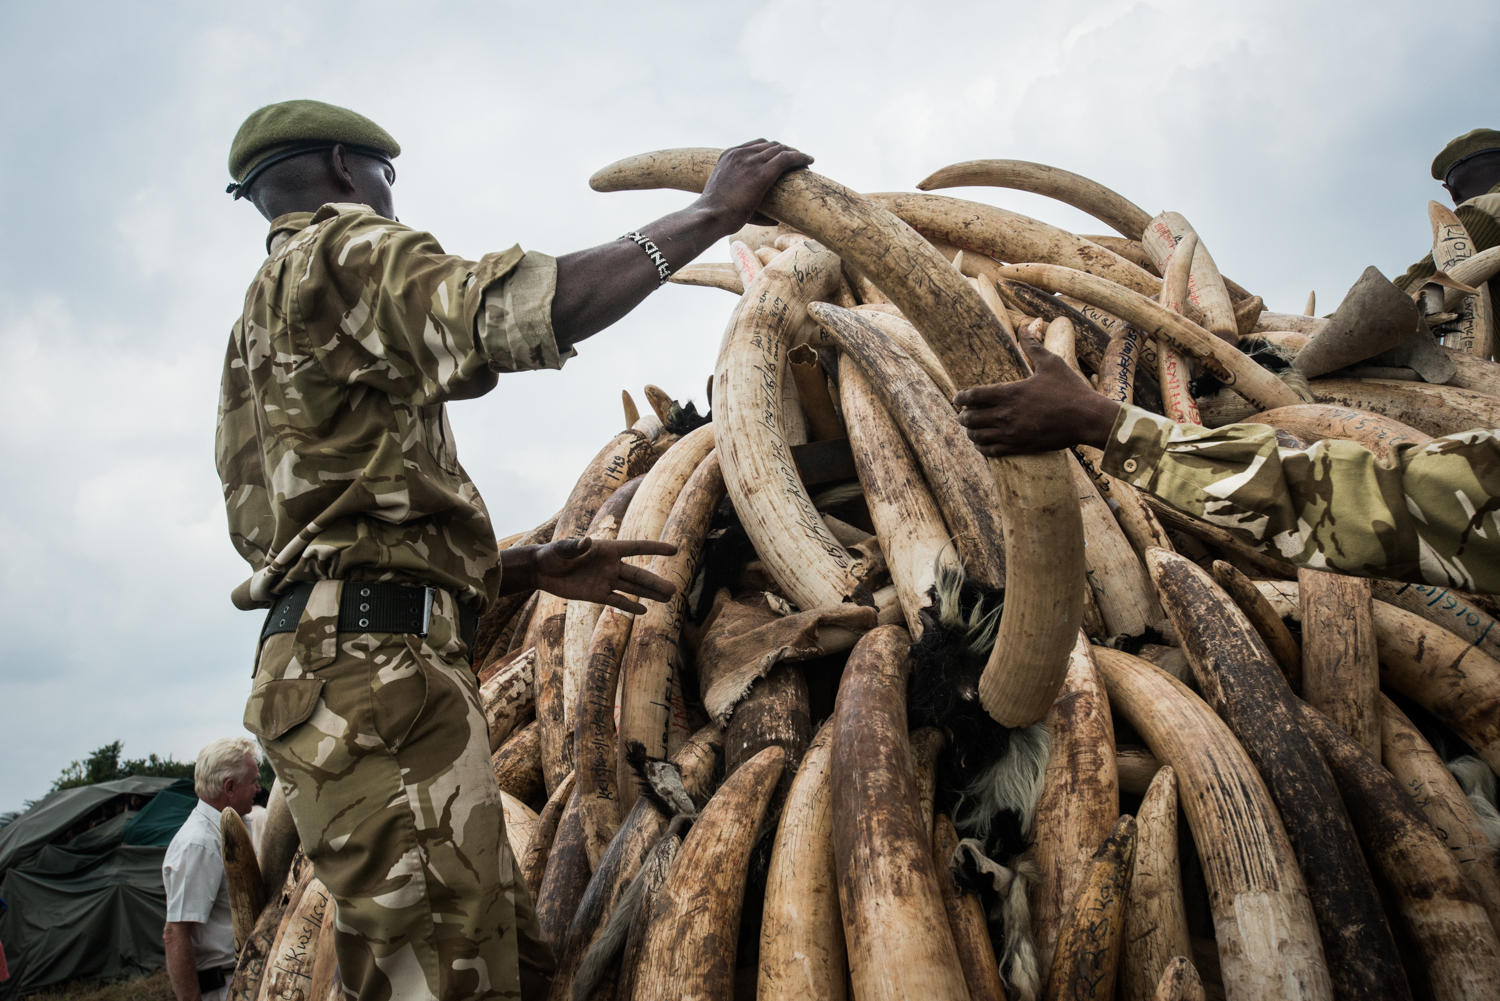 The ivory is stacked into large piles for the burn. Photo by Mia Collis for the Kenya Wildlife Service